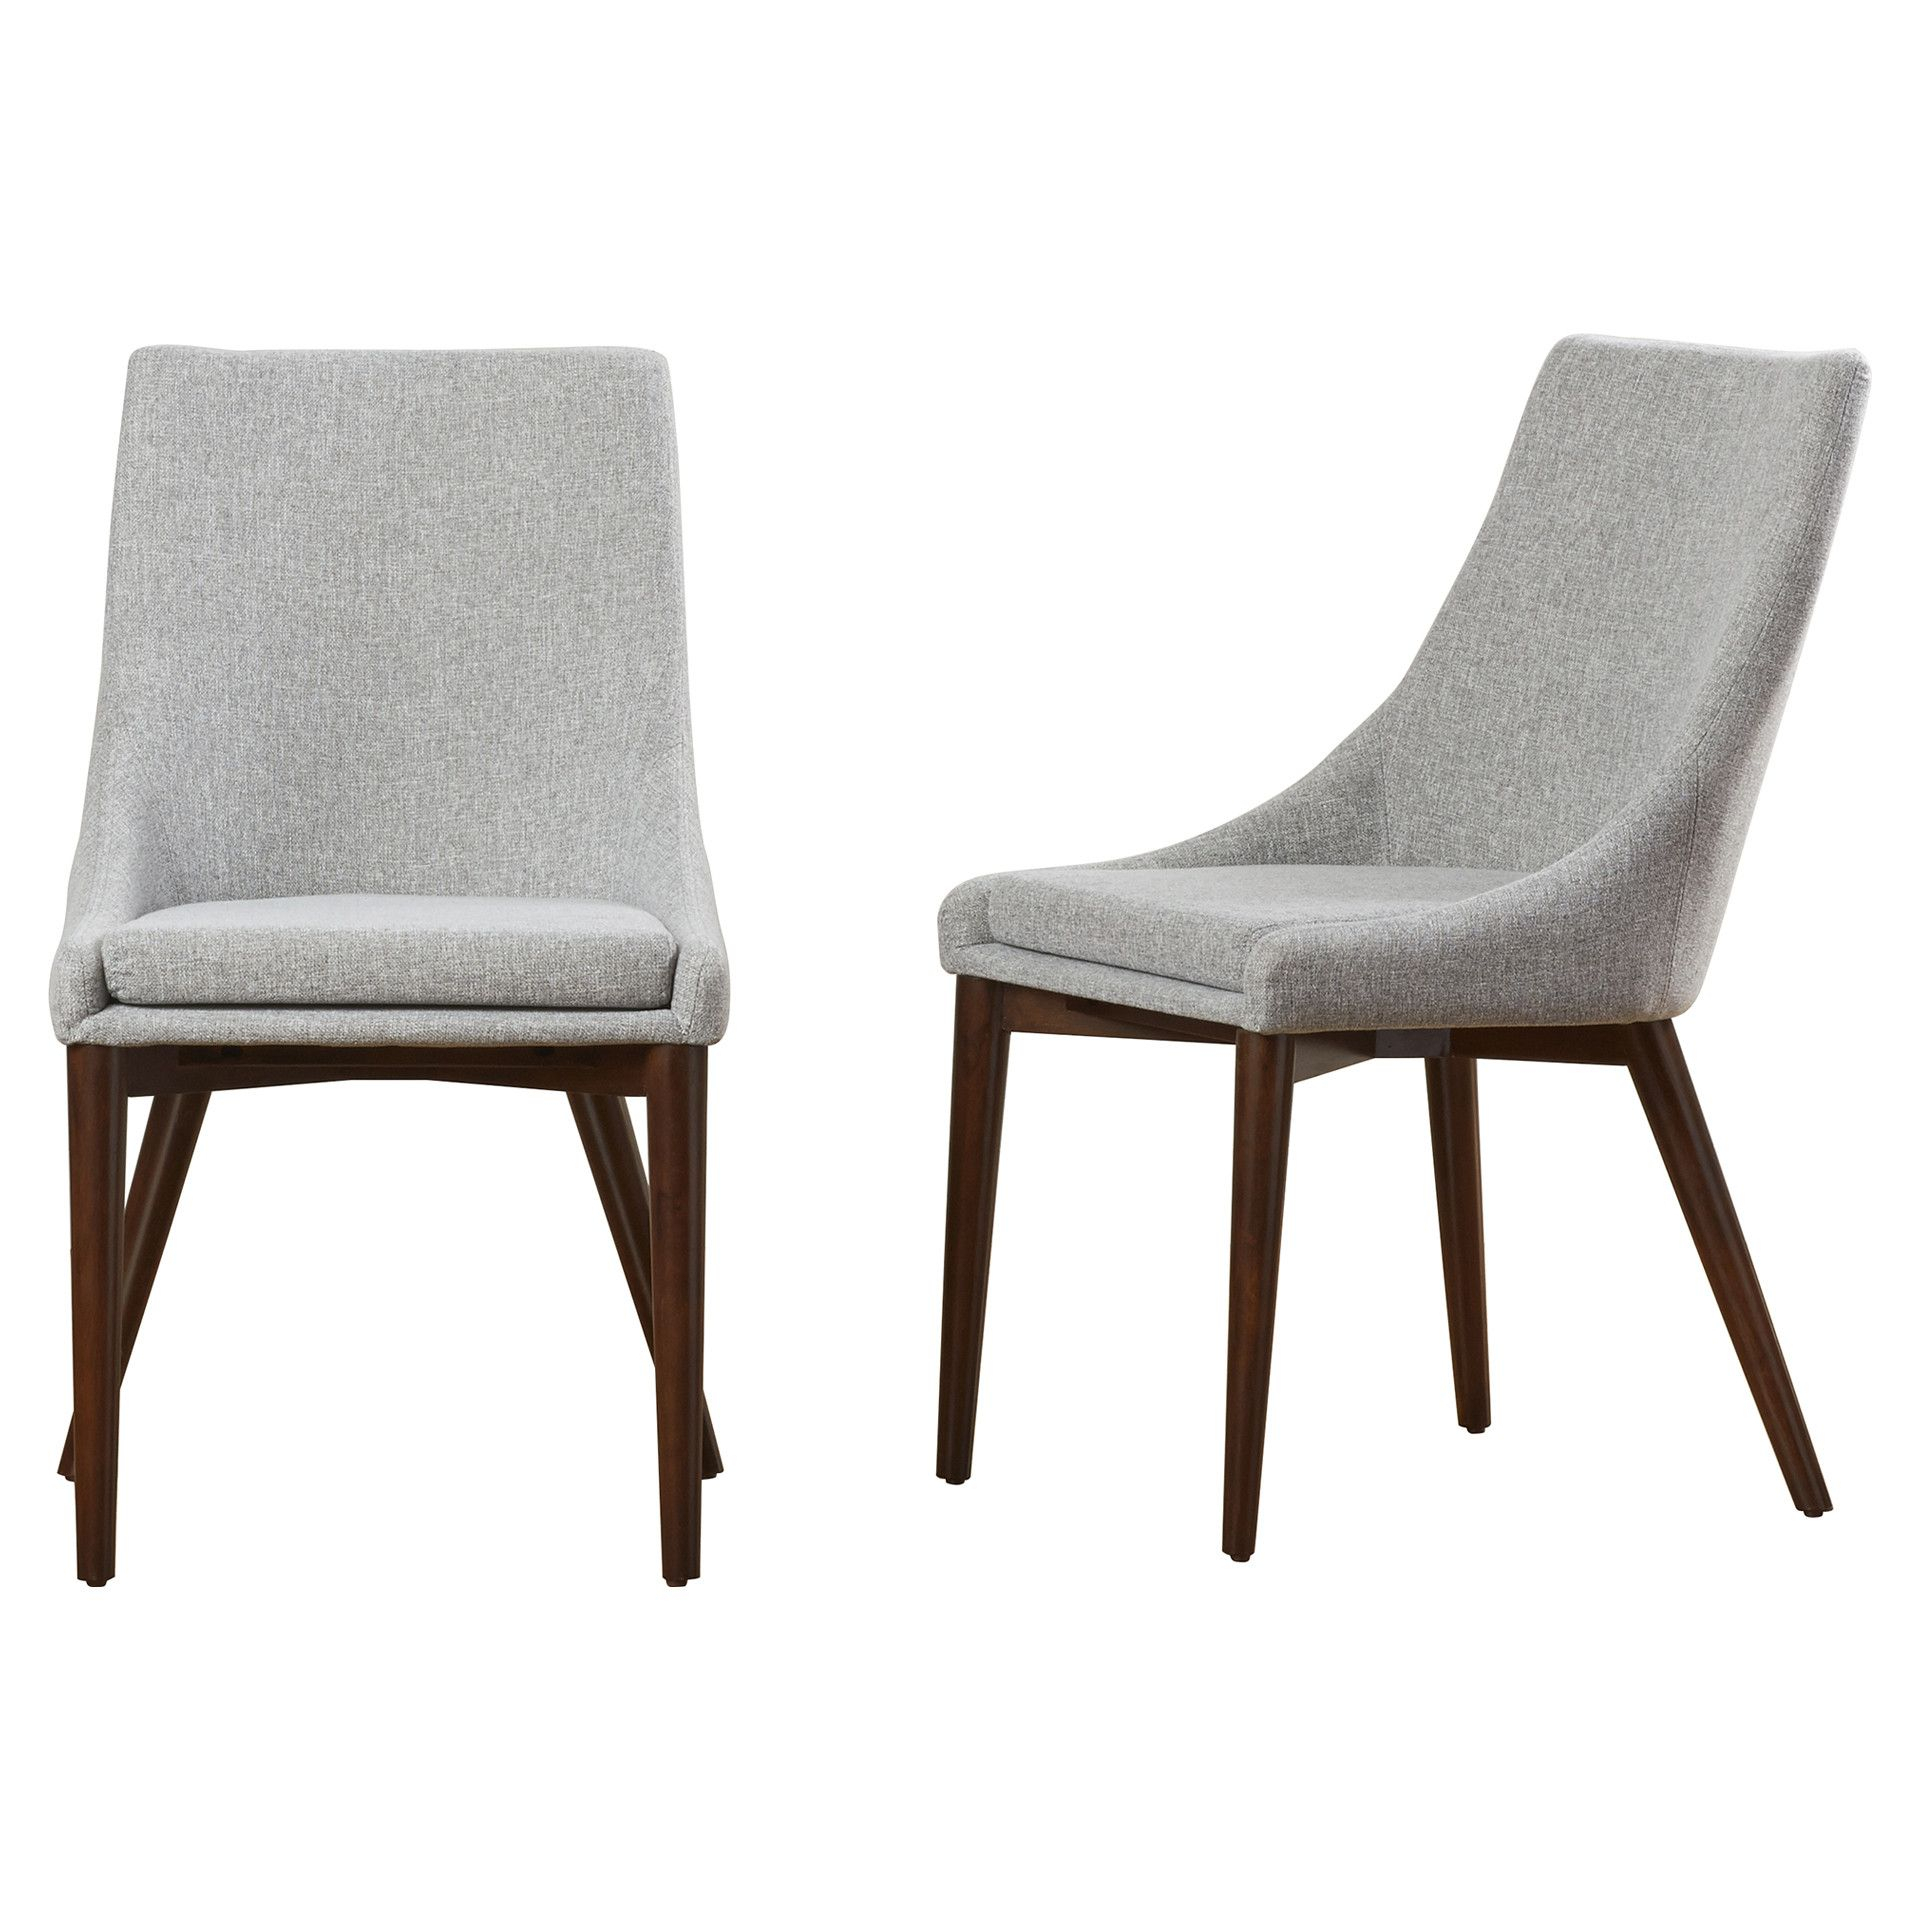 Corrigan Studio Carmelo Parsons Chair | Dining Chair For Aaliyah Parsons Chairs (View 4 of 15)